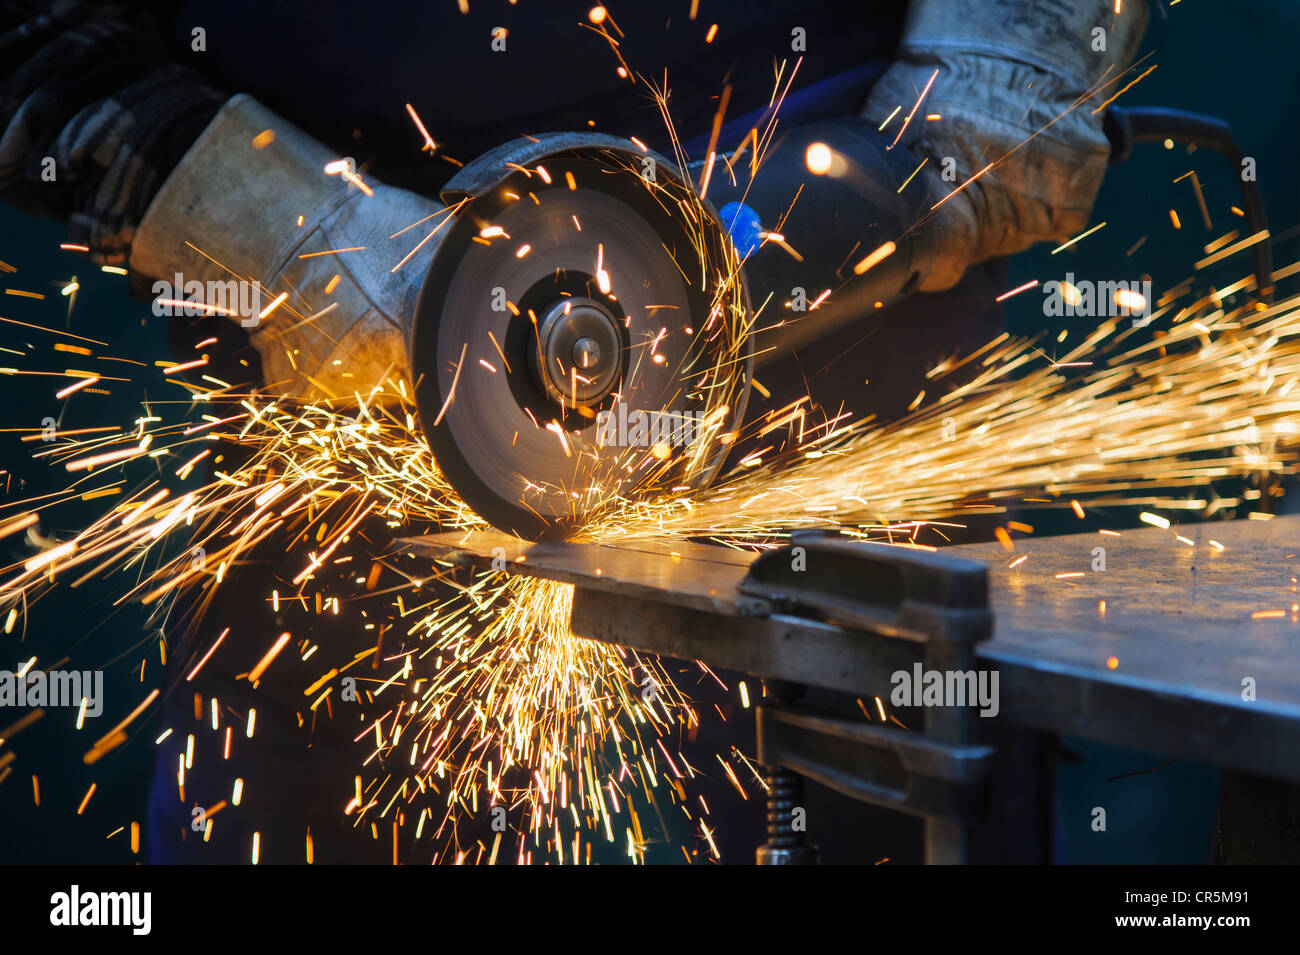 Cutting a steel plate with an angle grinder Stock Photo